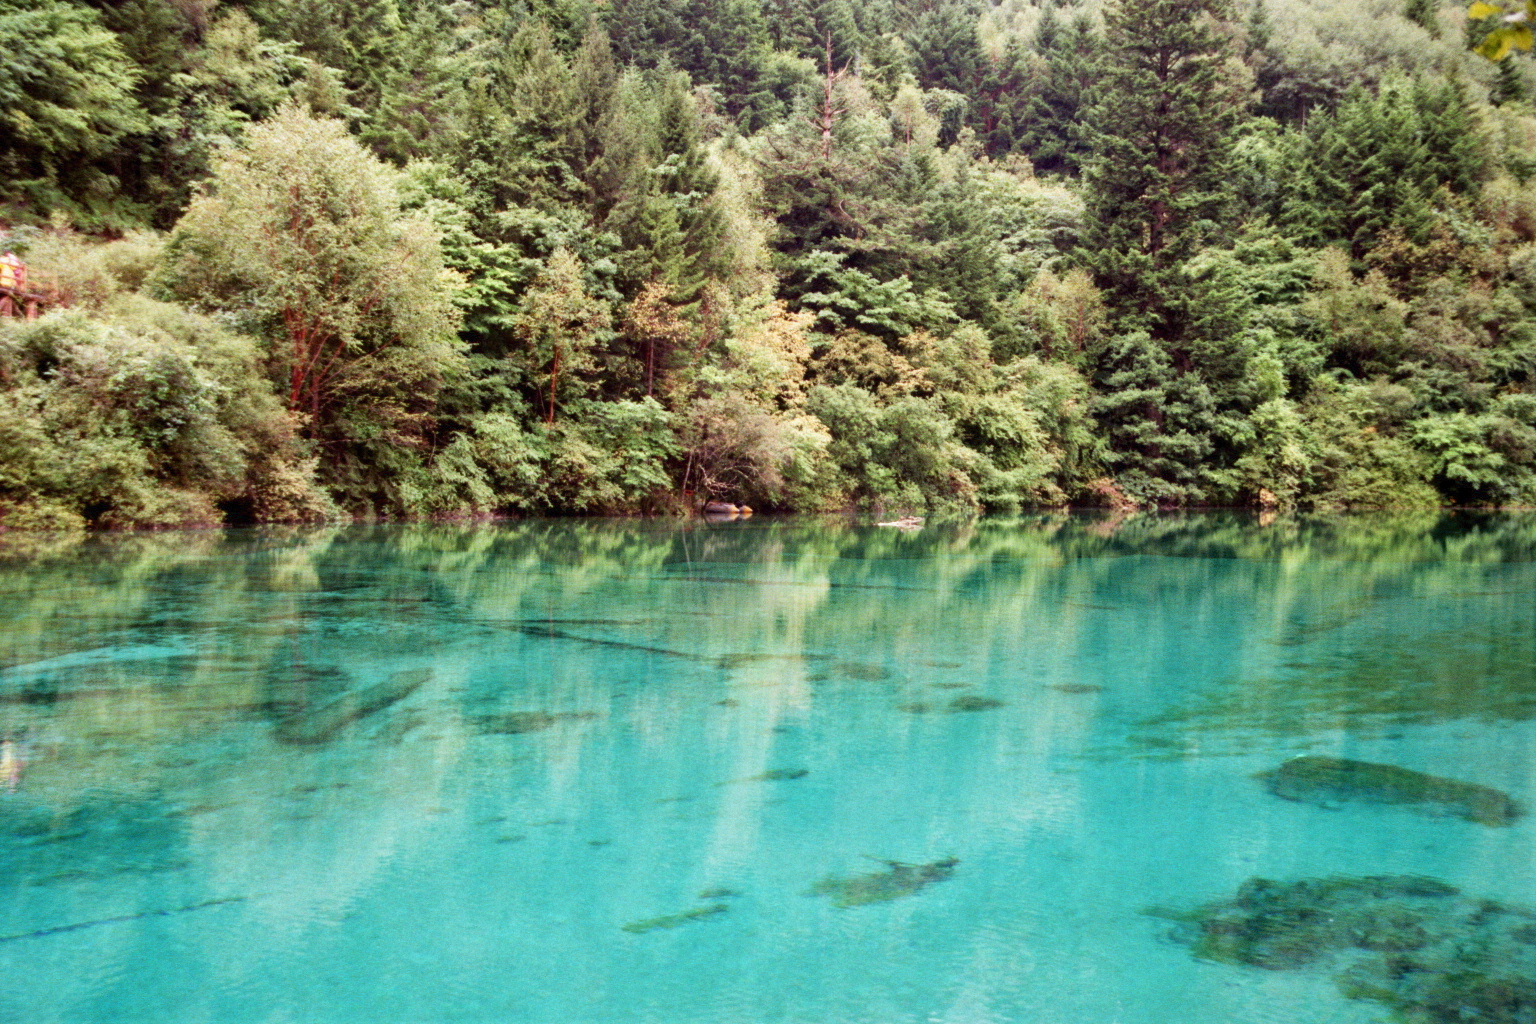 Surreal, colorful national park in Jiuzhaigou, China